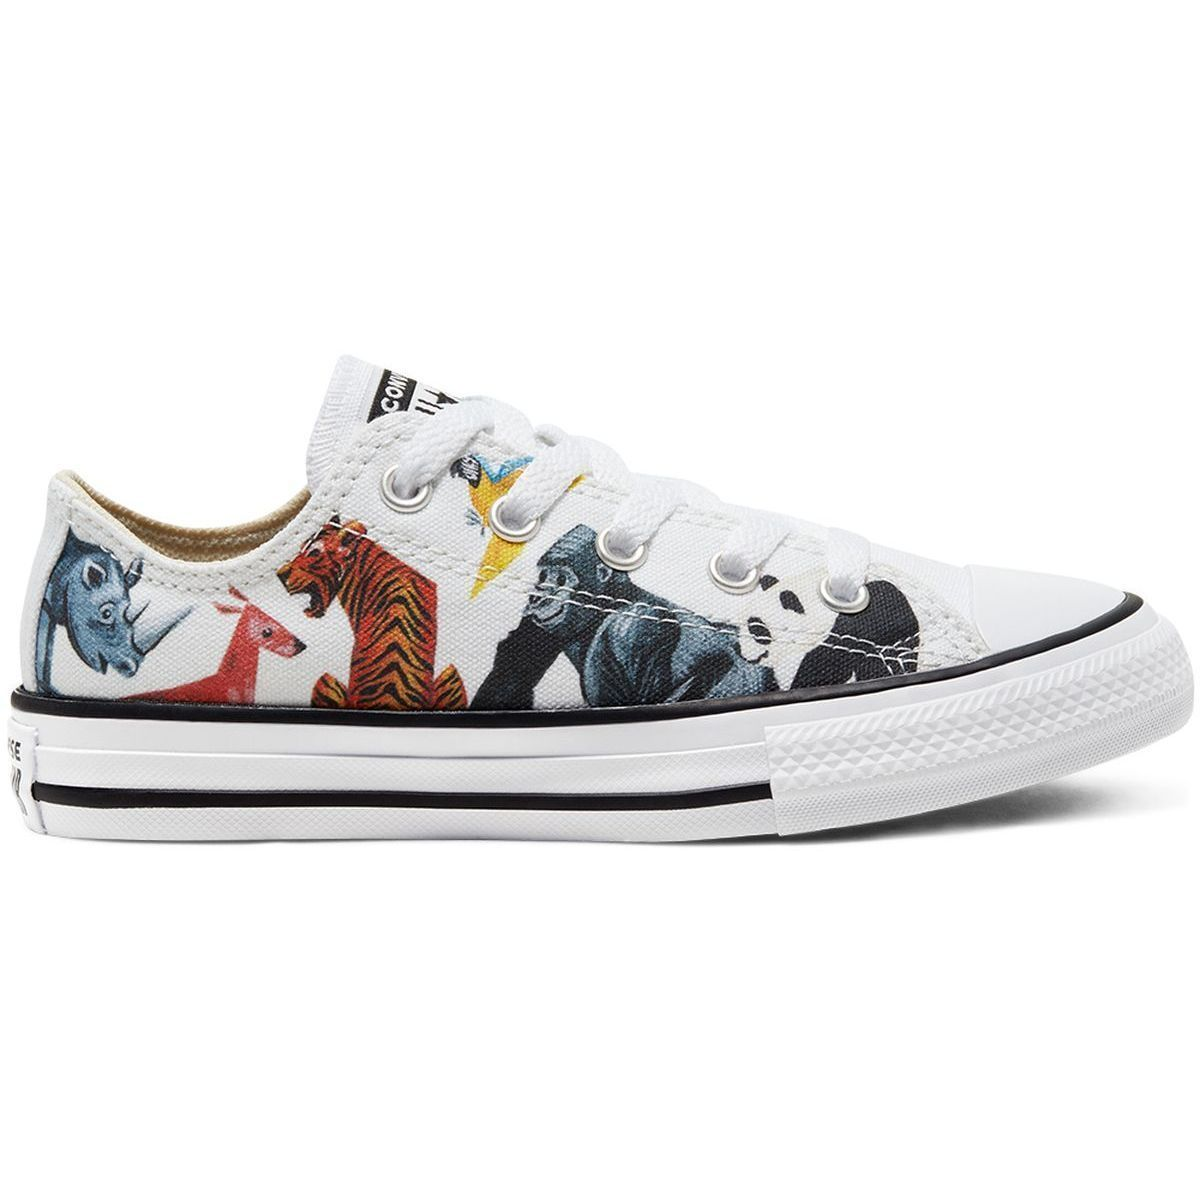 BOLS_QUEEN MIRACLE LOVERTY CHUCK TAYLOR ALL STAR OX:MULTICOLORE/TOILE/TOILE/CAOUTCHOUC/Multicolore